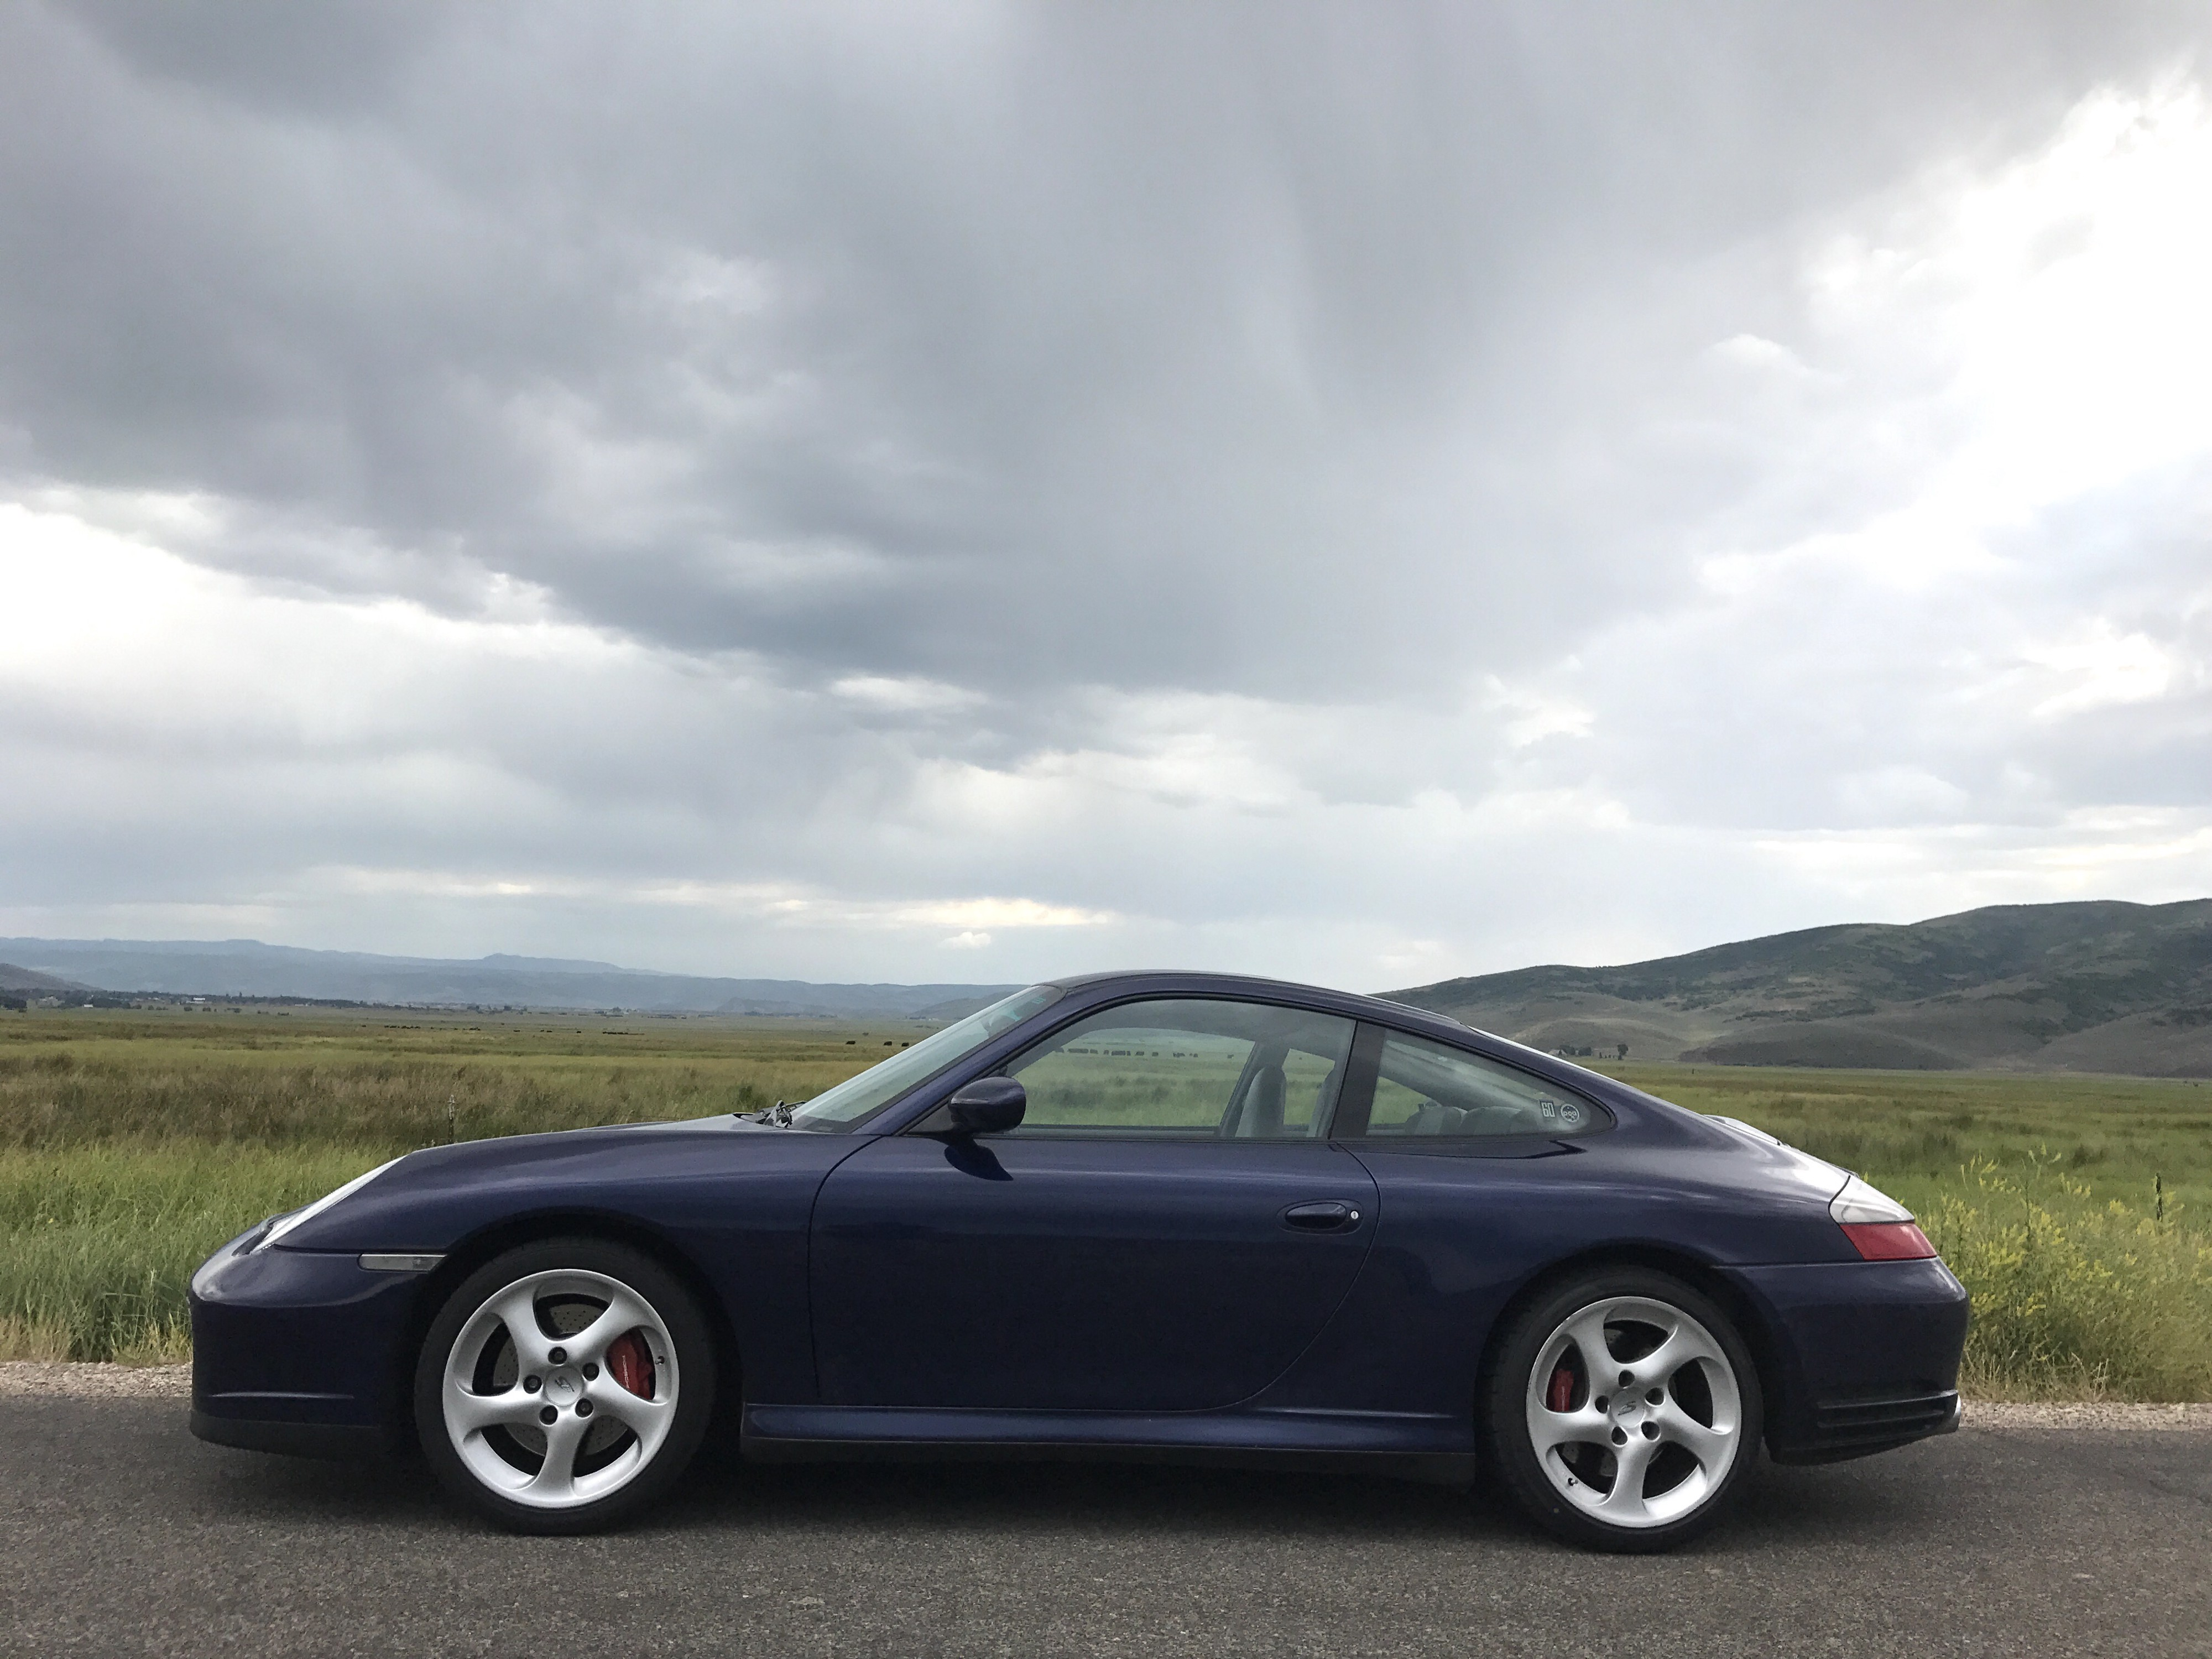 I Bought A Porsche 911 C4s For The Price Of A New Gti By Jay Dutton Medium